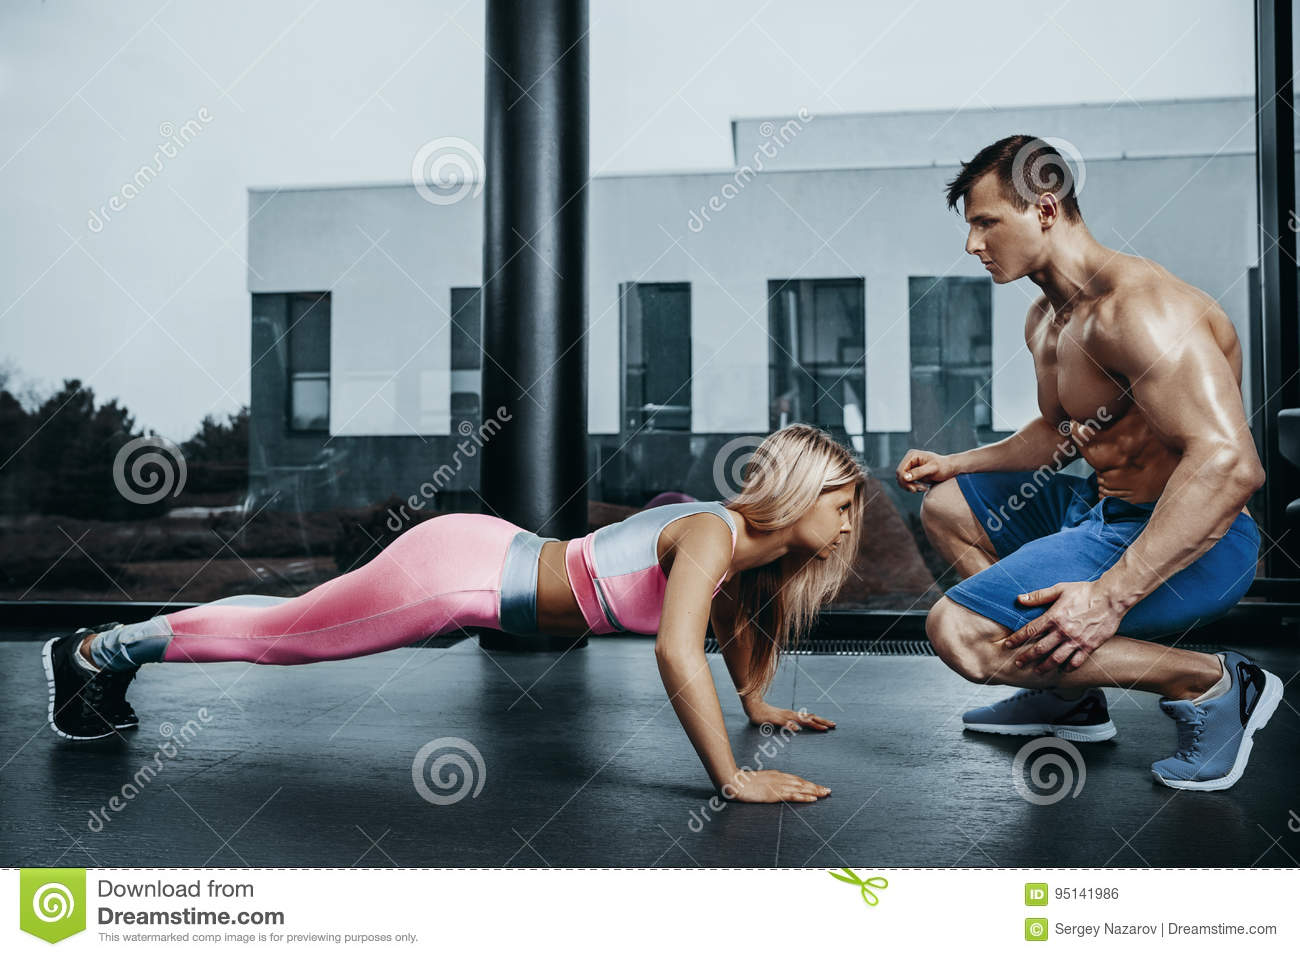 Sportive woman doing plank exercise training back and press muscles with trainer. Sport fitness workout strength power